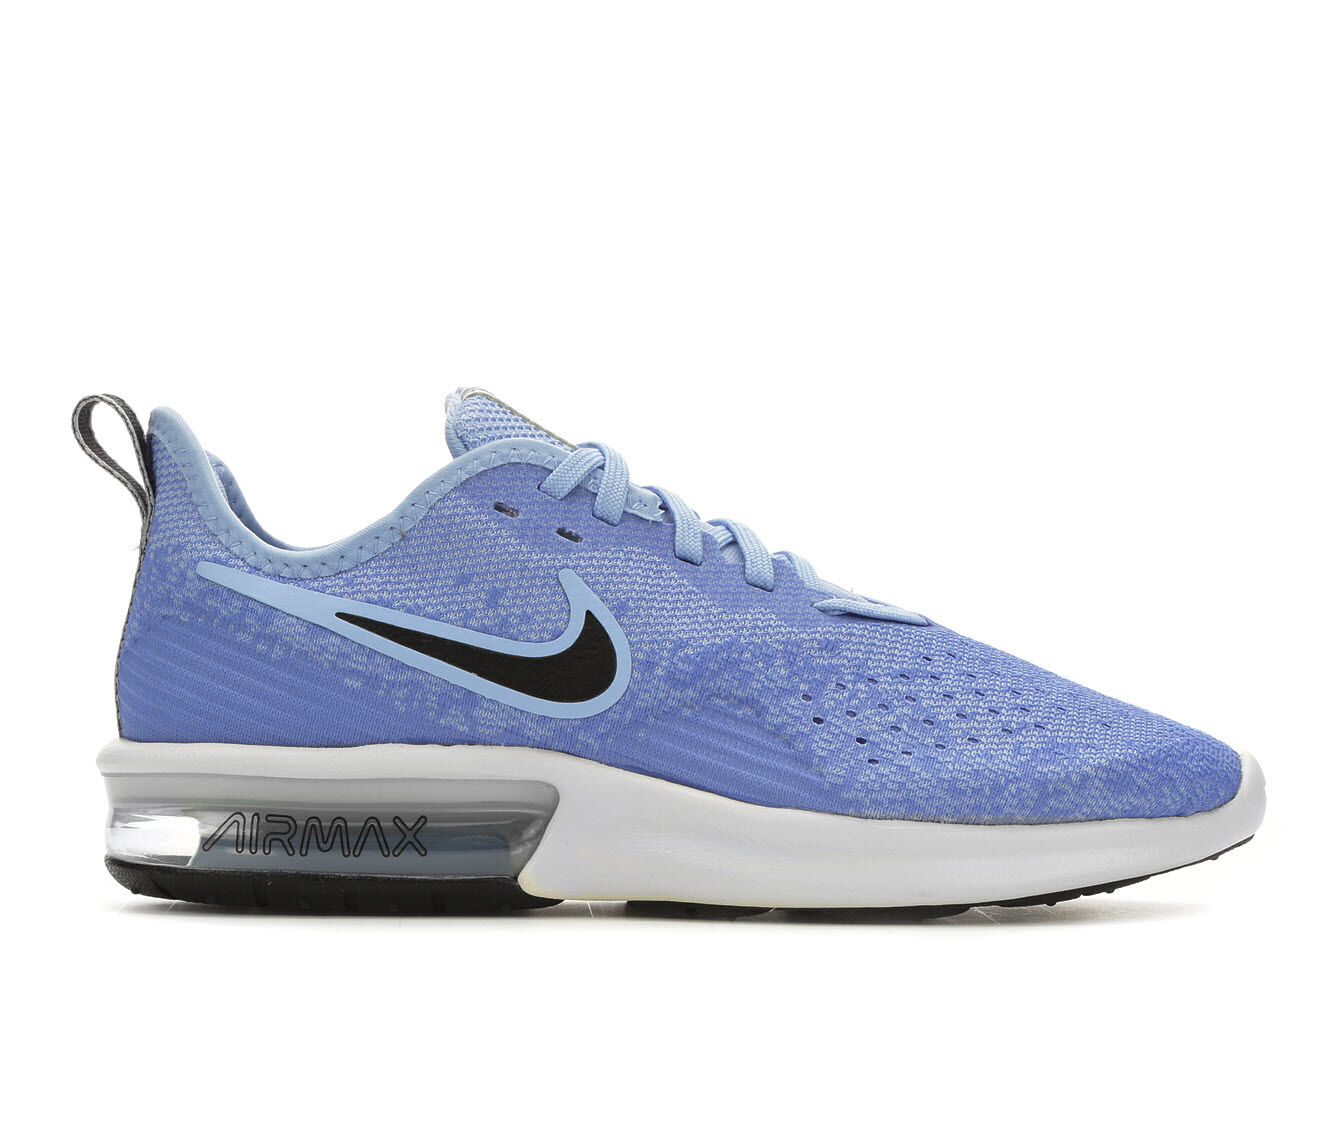 Women's Nike Air Max Sequent 4 Running Shoes Blue/Black/Wht